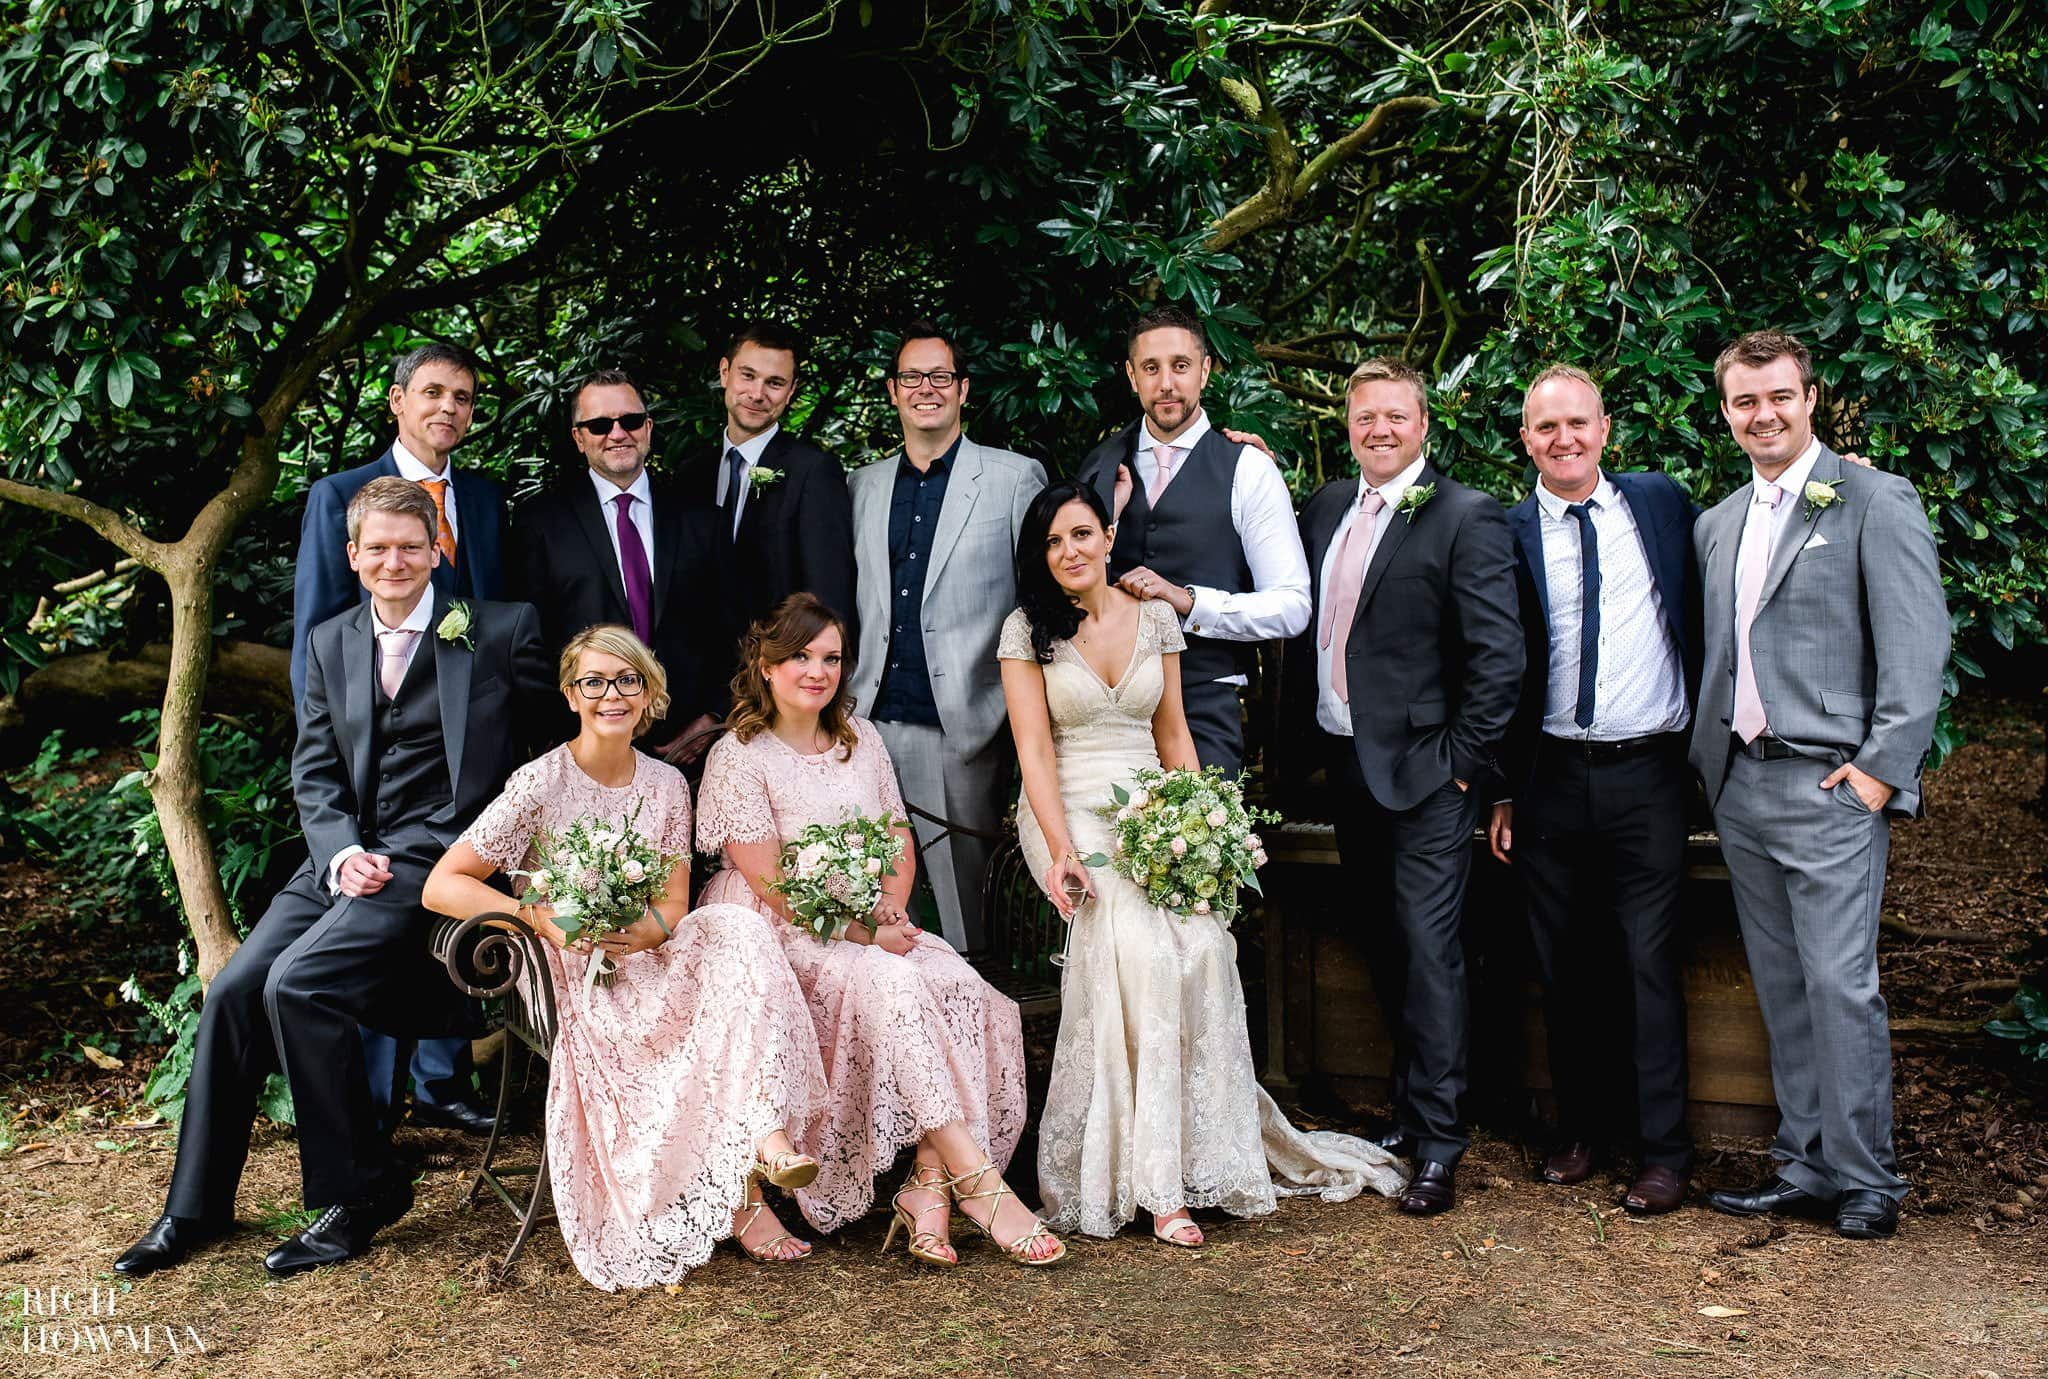 Wedding group portrait